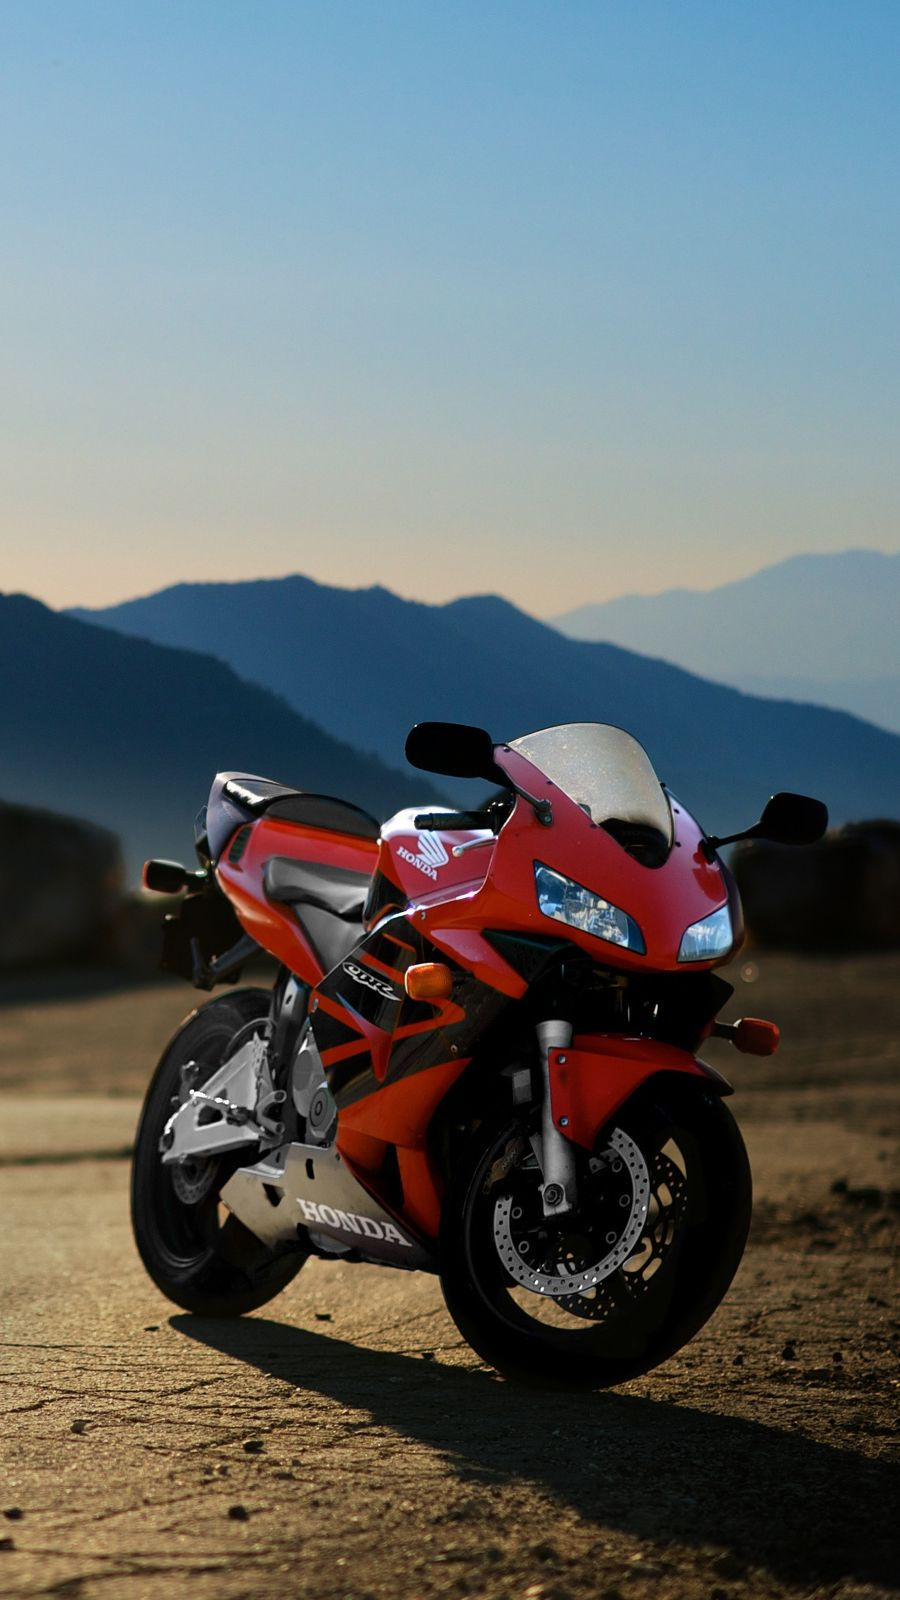 honda-cbr600rr-red-motorcycle-iphone-wallpaper | iphone wallpapers